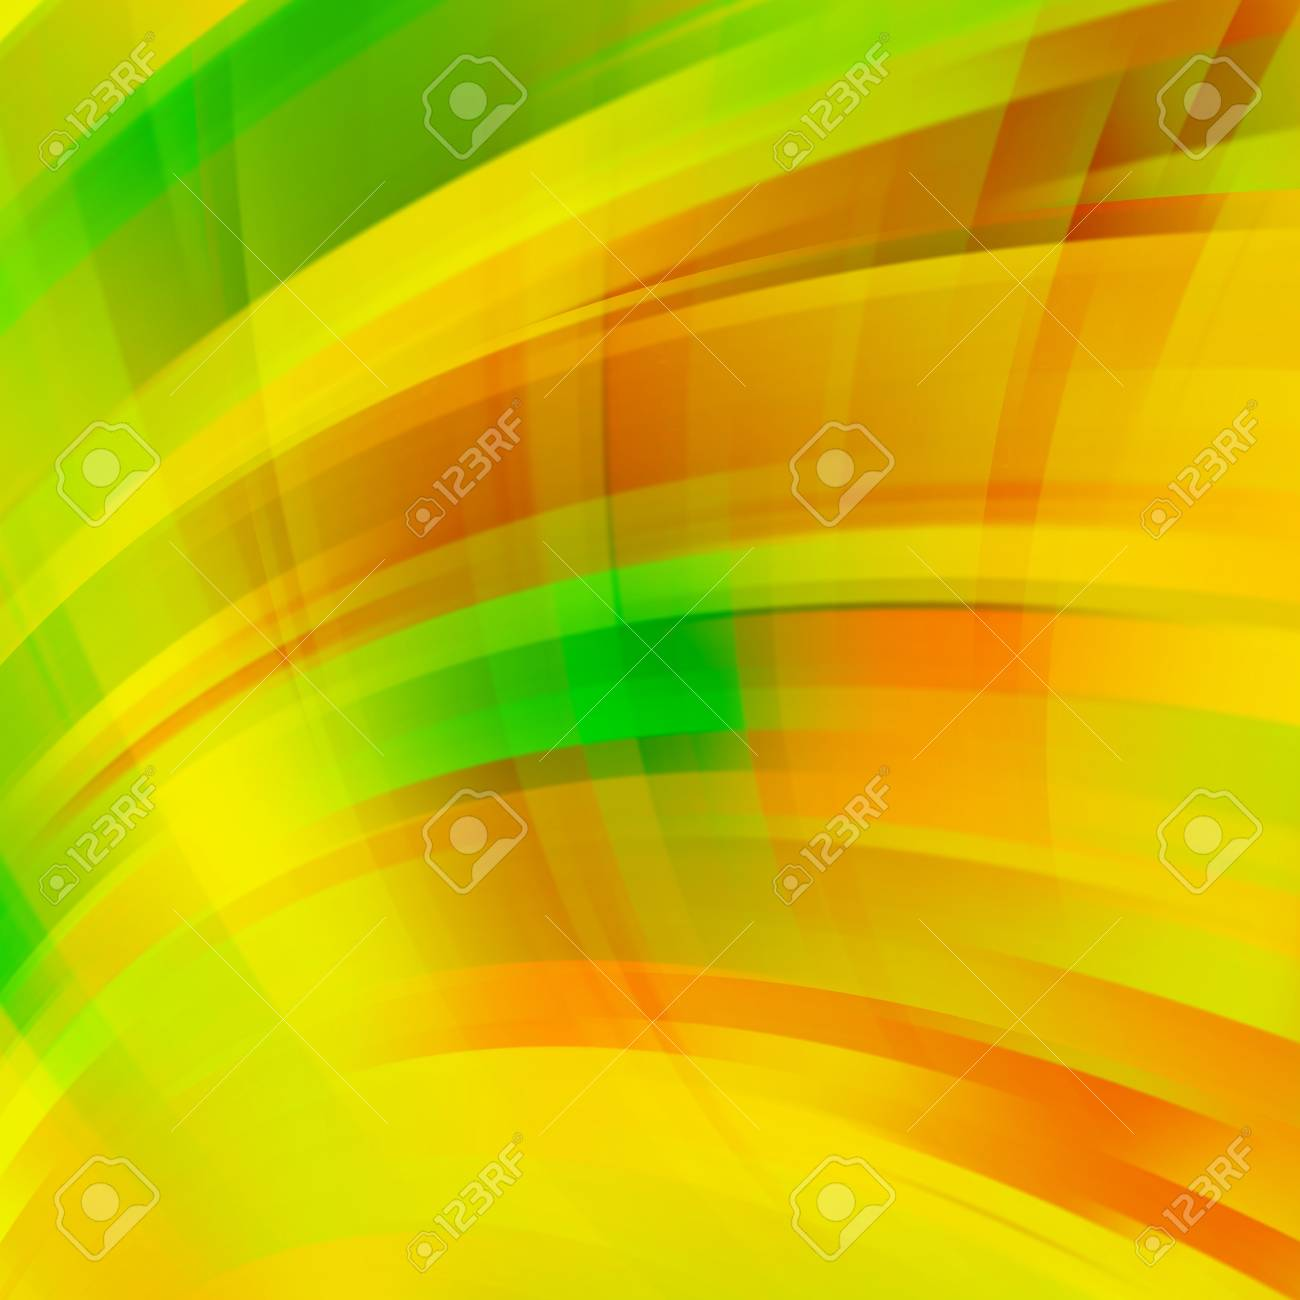 Abstract Yellow Background With Smooth Lines Color Waves Pattern